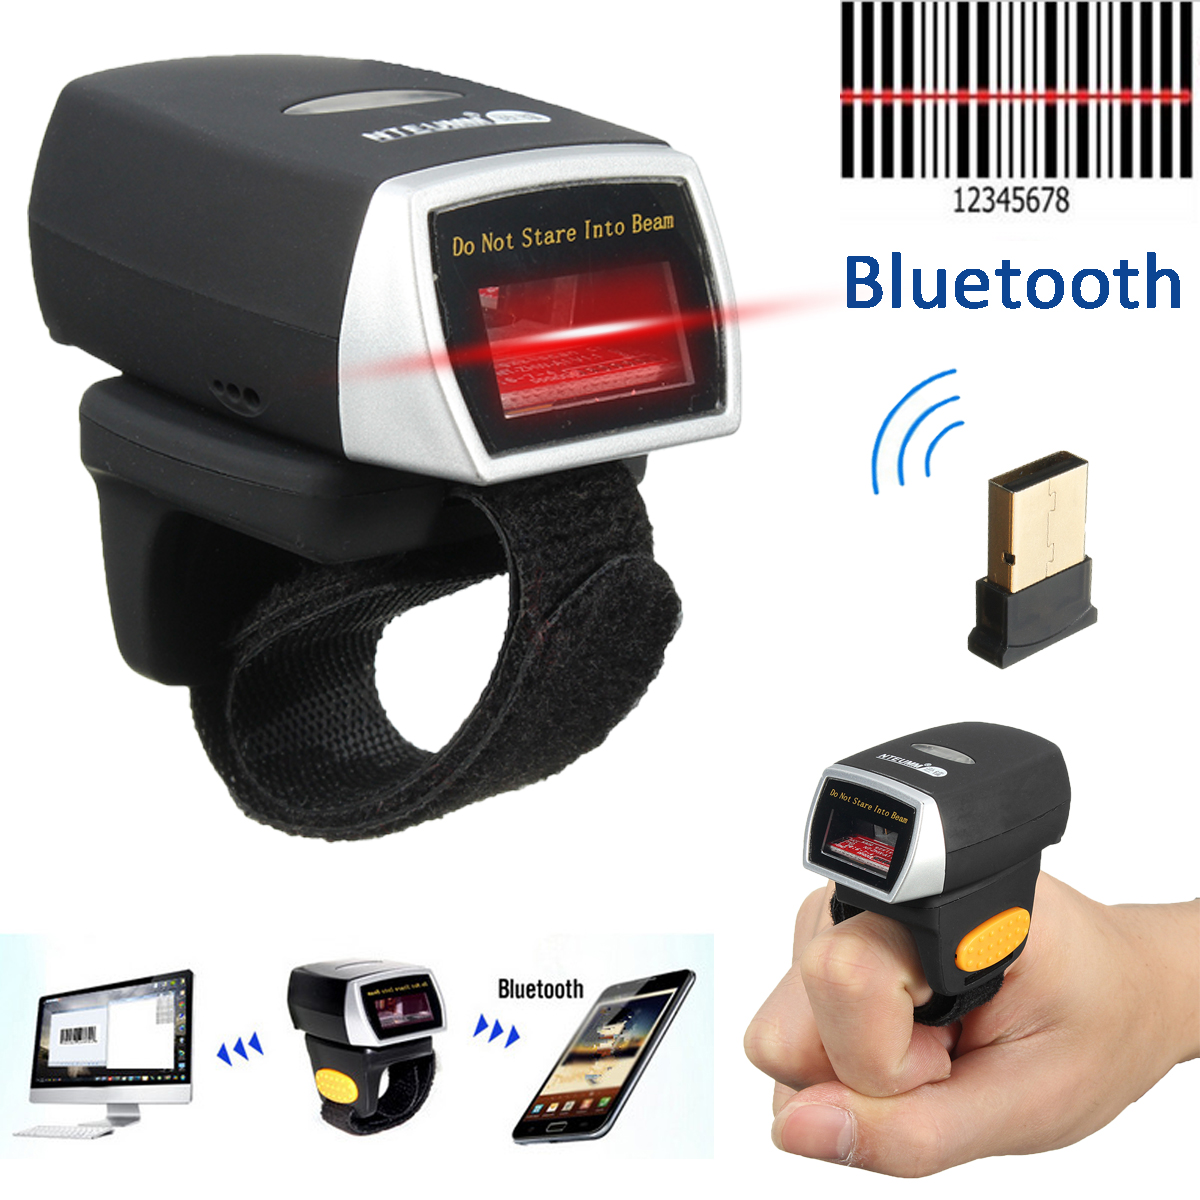 Mini Bluetooth Scanner Barcode Reader Laser Weirless Scanner Wearable Ring Bar Code Scanner 1D Reader Scan for Phone PC Tablet 10pairs lot fk30 ff30 ball screw end supports fixed side fk30 and floated side ff30 match with ball screw shaft